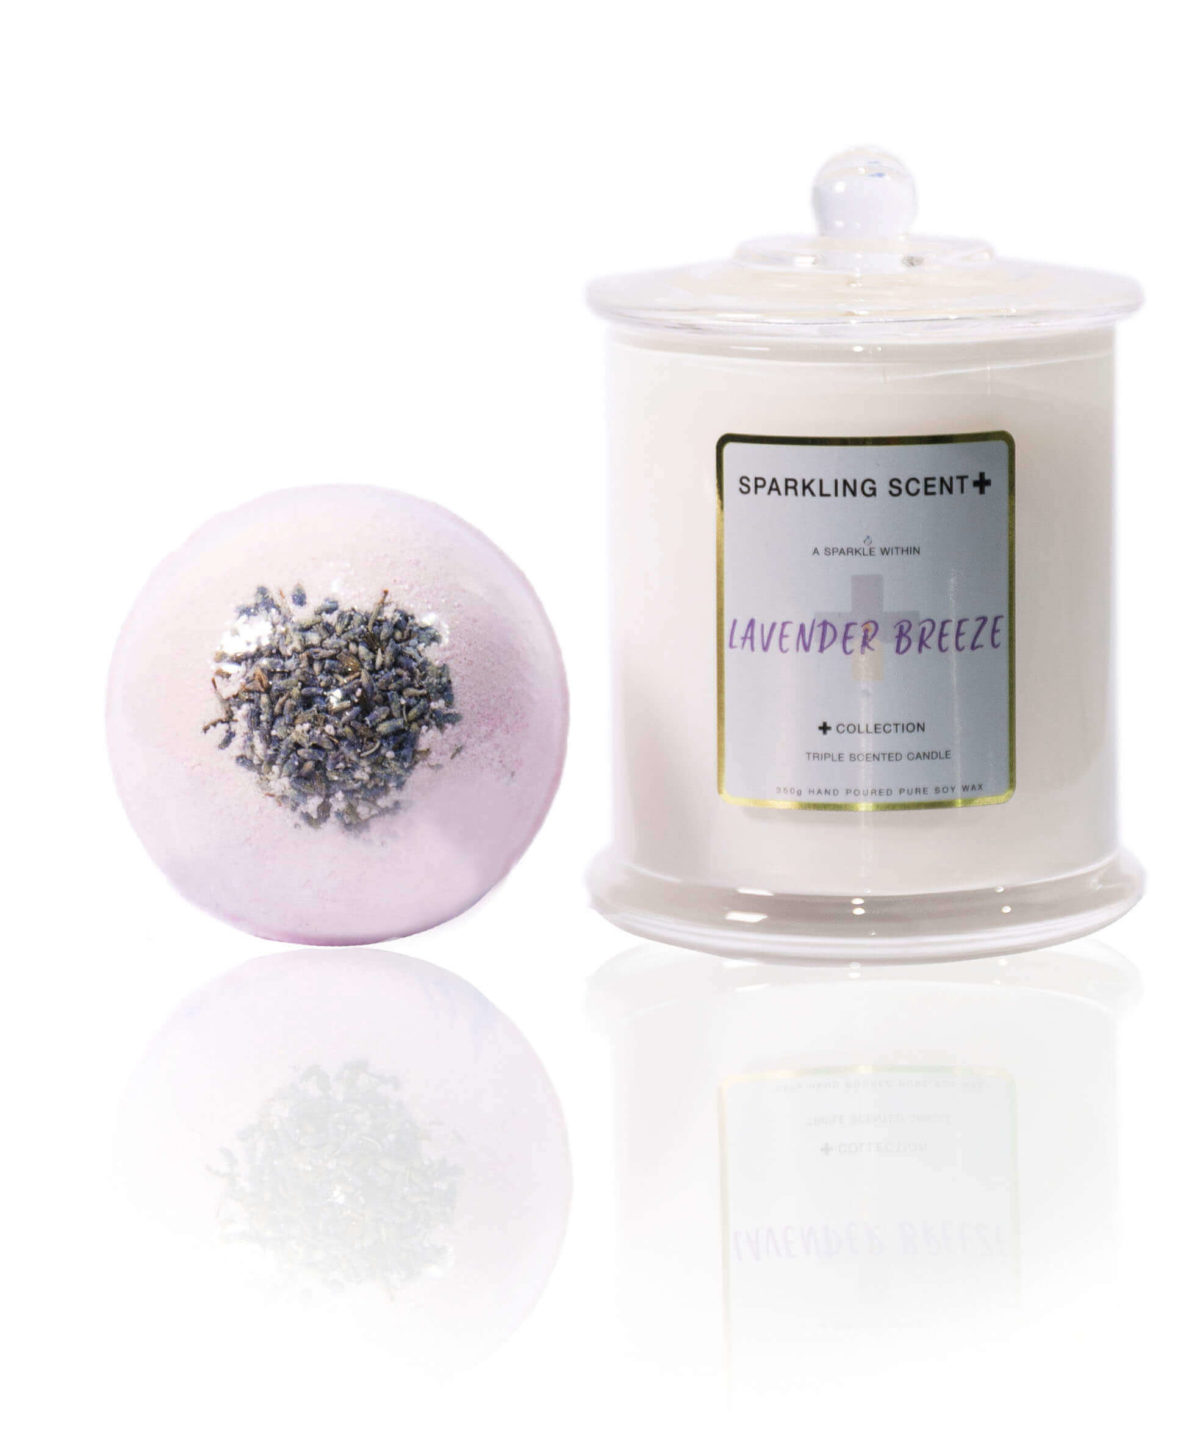 Lavender gift set in the centre of the screen. A bright mica purple Botanical Lavender flower Bomb bomb and a Glossy White Elegant French Gala candle.